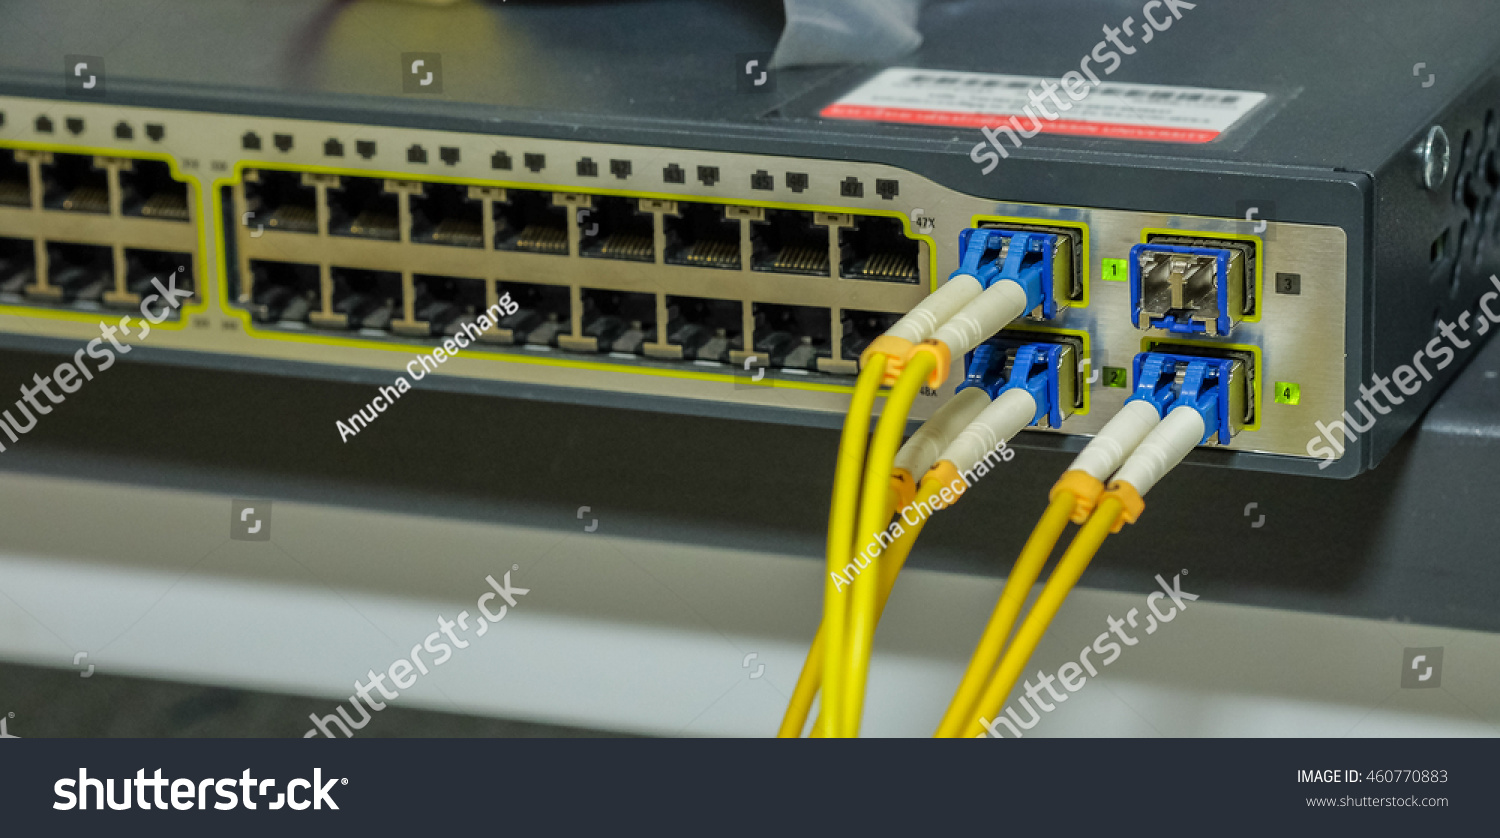 Port and module of fiber optic cable… Stock Photo 460770883 - Avopix com